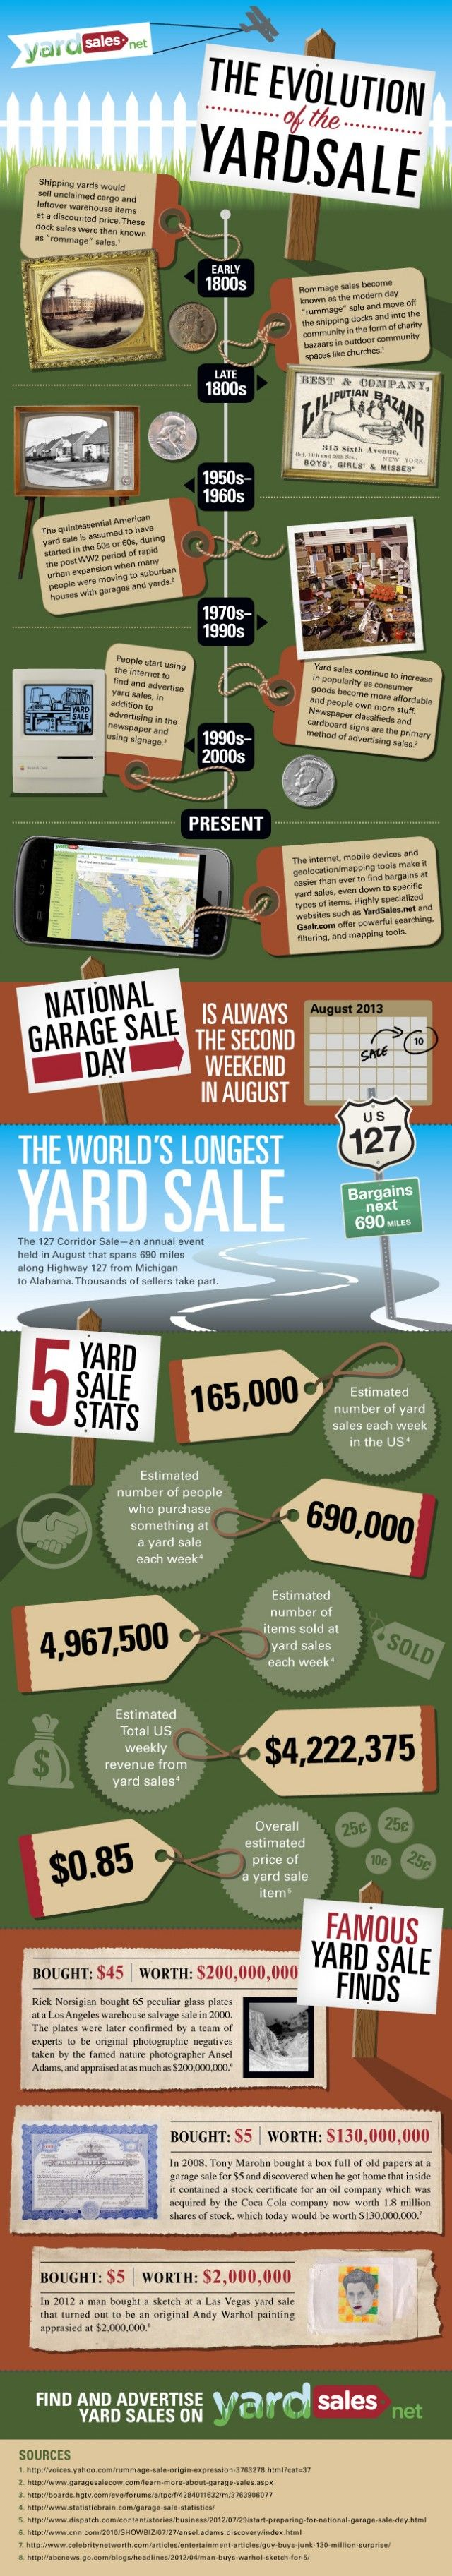 Yard sales have evolved but they are still hot, sweaty, weekend-stealing propositions. If you have good stuff (no old dirt-encrusted garden hoes or chipped dishes, natch)... you're better off letting the resale professionals at HowToConsign.com/find.htm find new homes for your underloved goods.